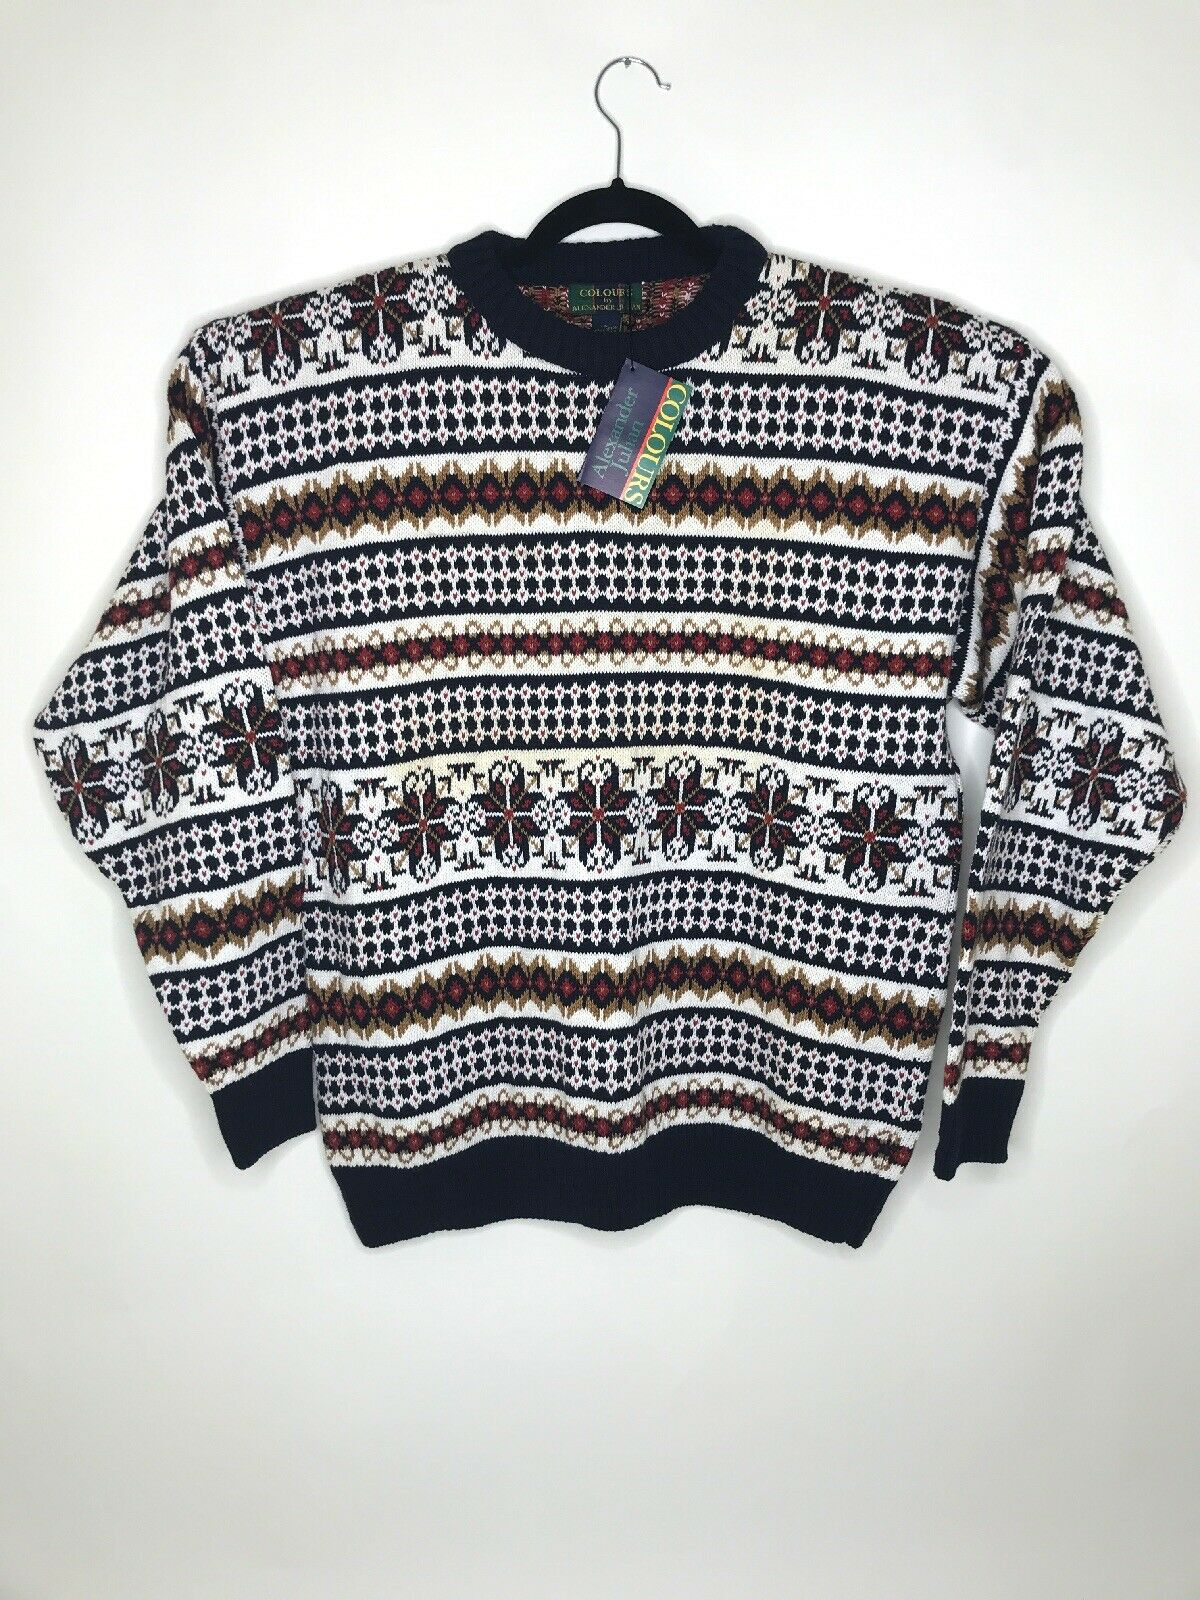 Vintage Colours by Alexander Julian Knit Men's Sweater Size Large NWT